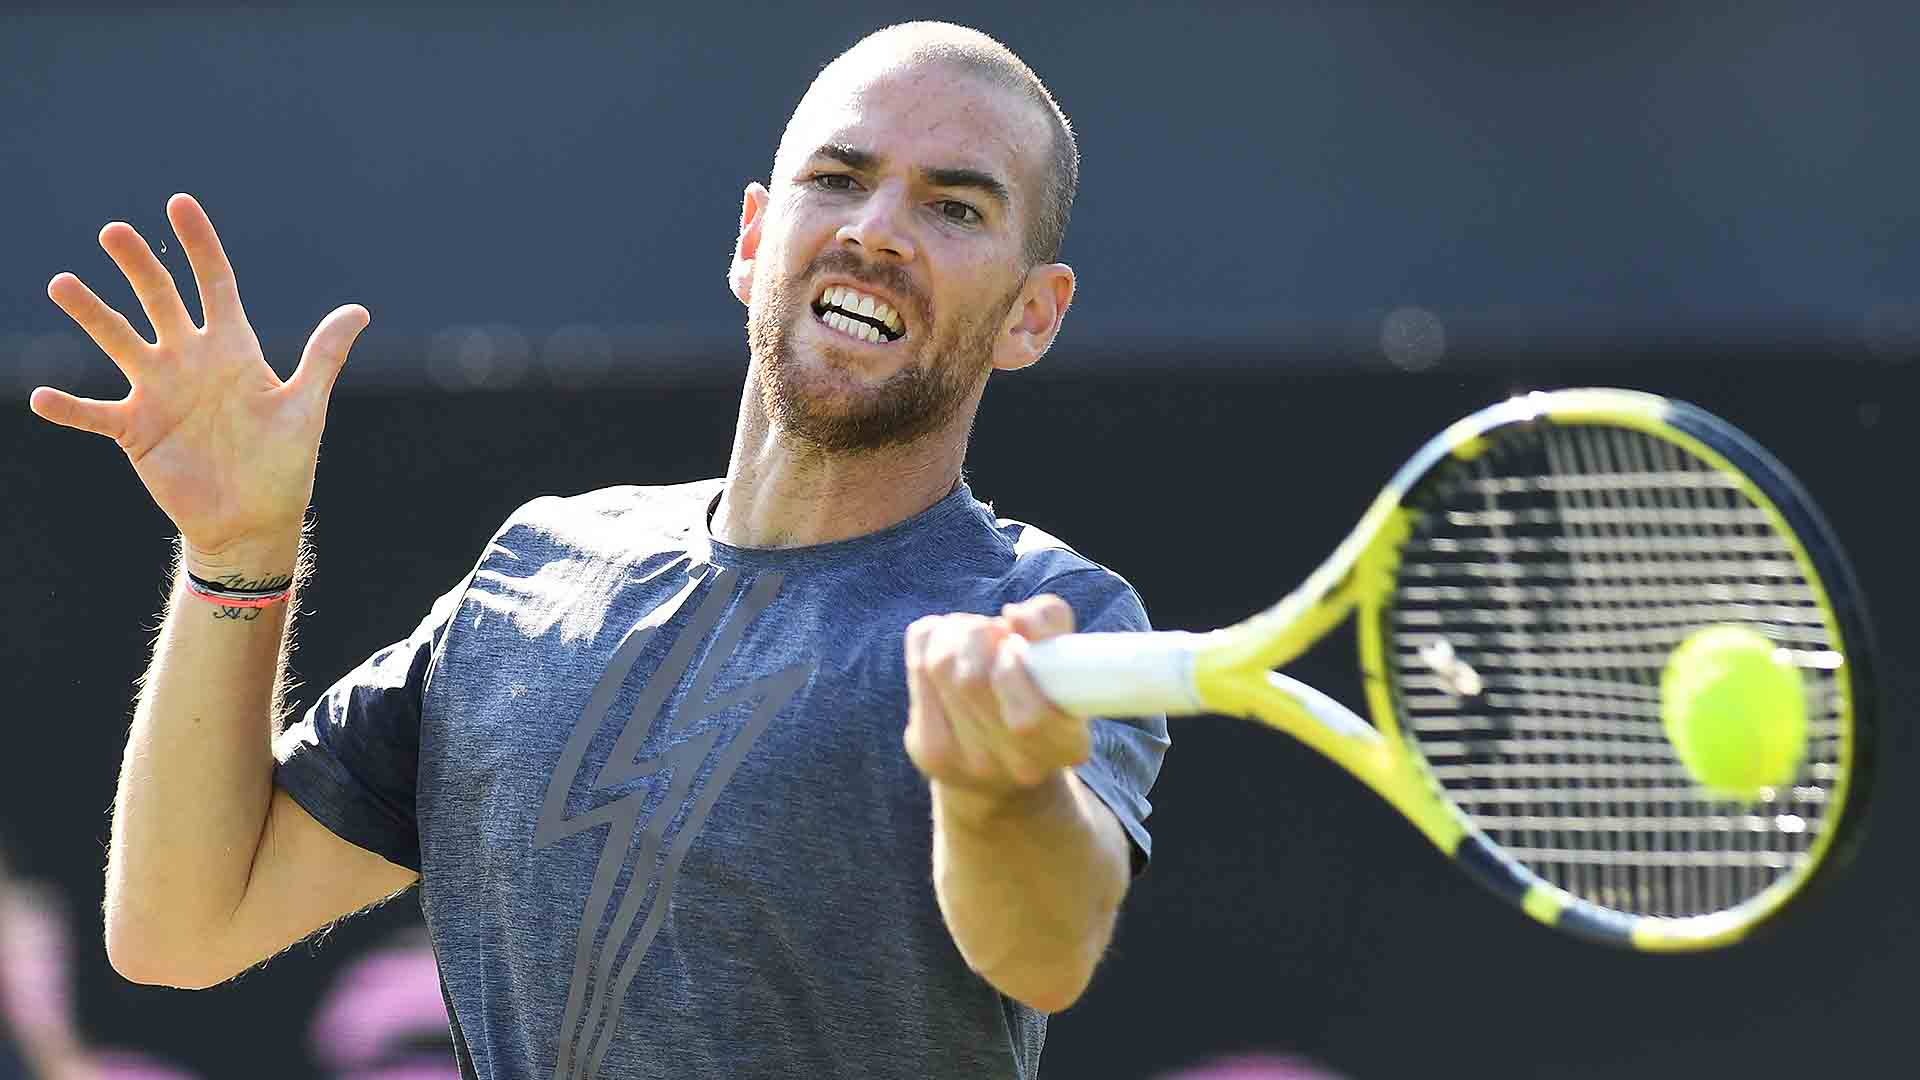 Adrian Mannarino defeats Borna Coric in a final-set tie-break to reach the Libema Open final on Sunday.